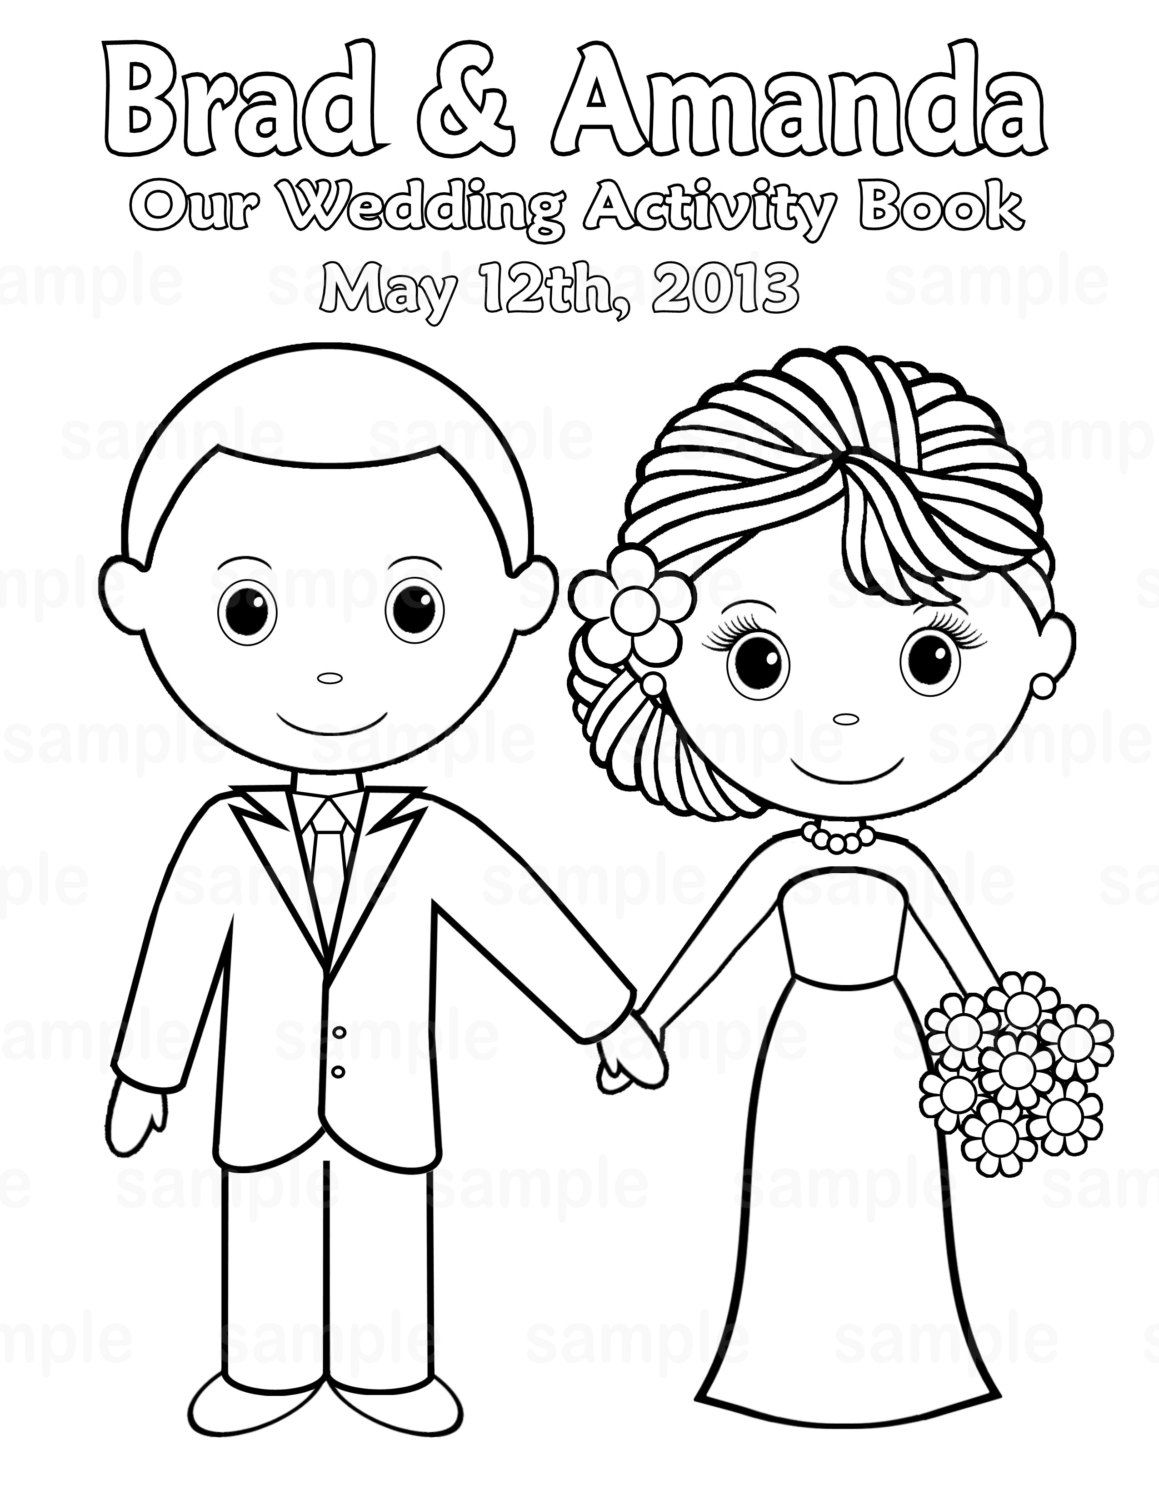 free printable coloring pictures wedding printable personalized wedding coloring activity book favor kids 85 x - Kid Free Books